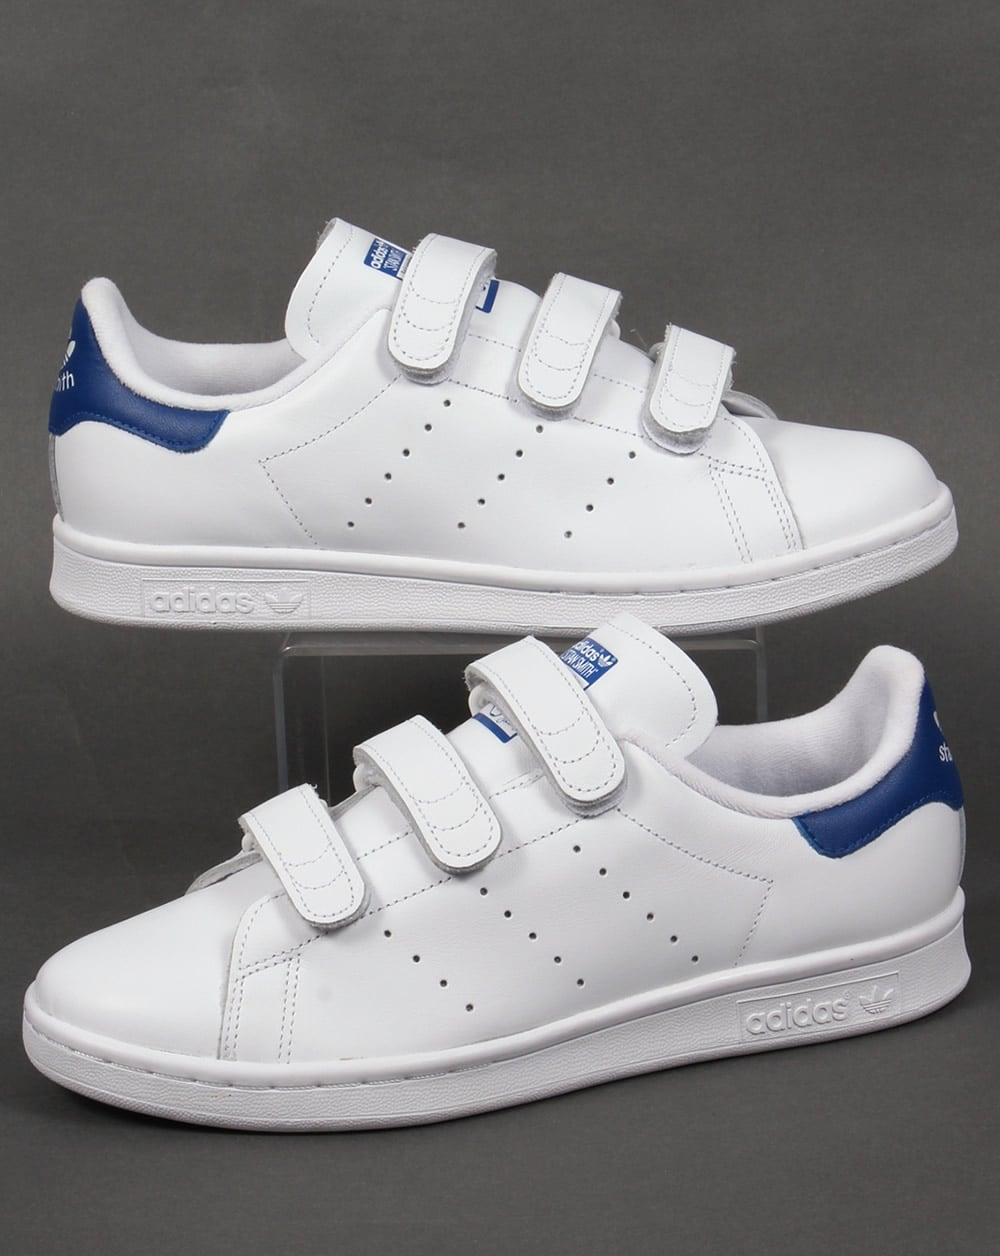 best service 3ab94 81c12 adidas Trainers Adidas Stan Smith CF Trainers White Royal Blue